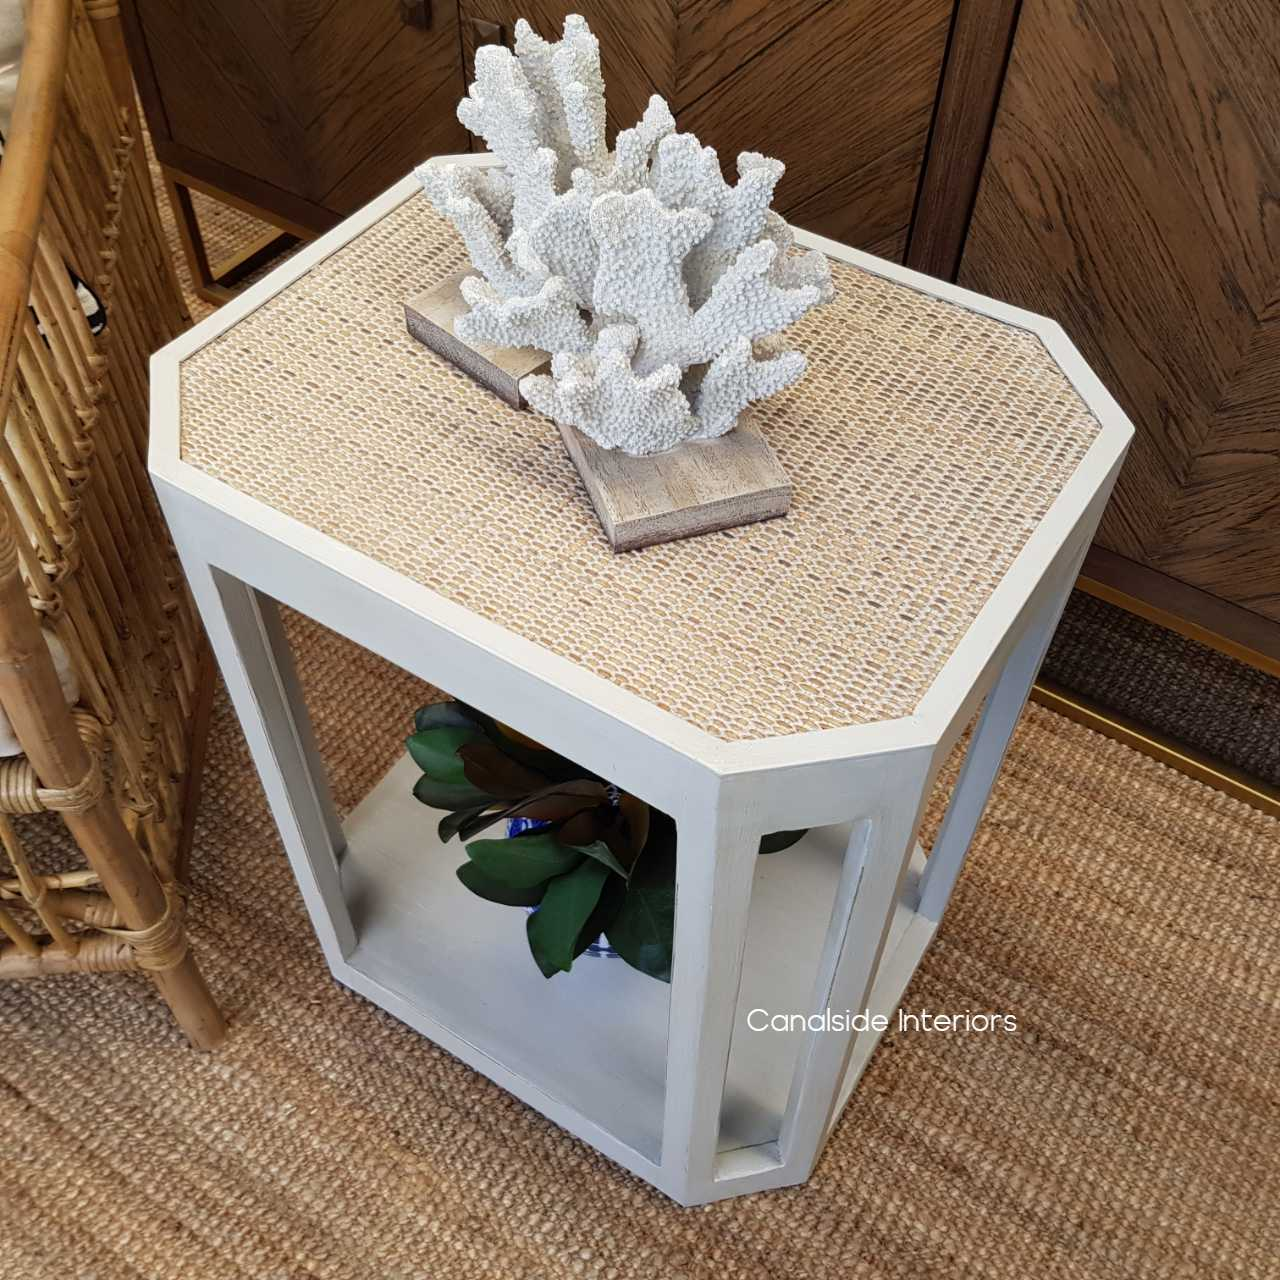 Brielle Rattan Side Table HAMPTONS Style, PLANTATION Style, LIVING Room, LIVING, Living Room island coastal Distressed White  FRENCH  FURNITURE, TABLES, Side Tables, Coffee